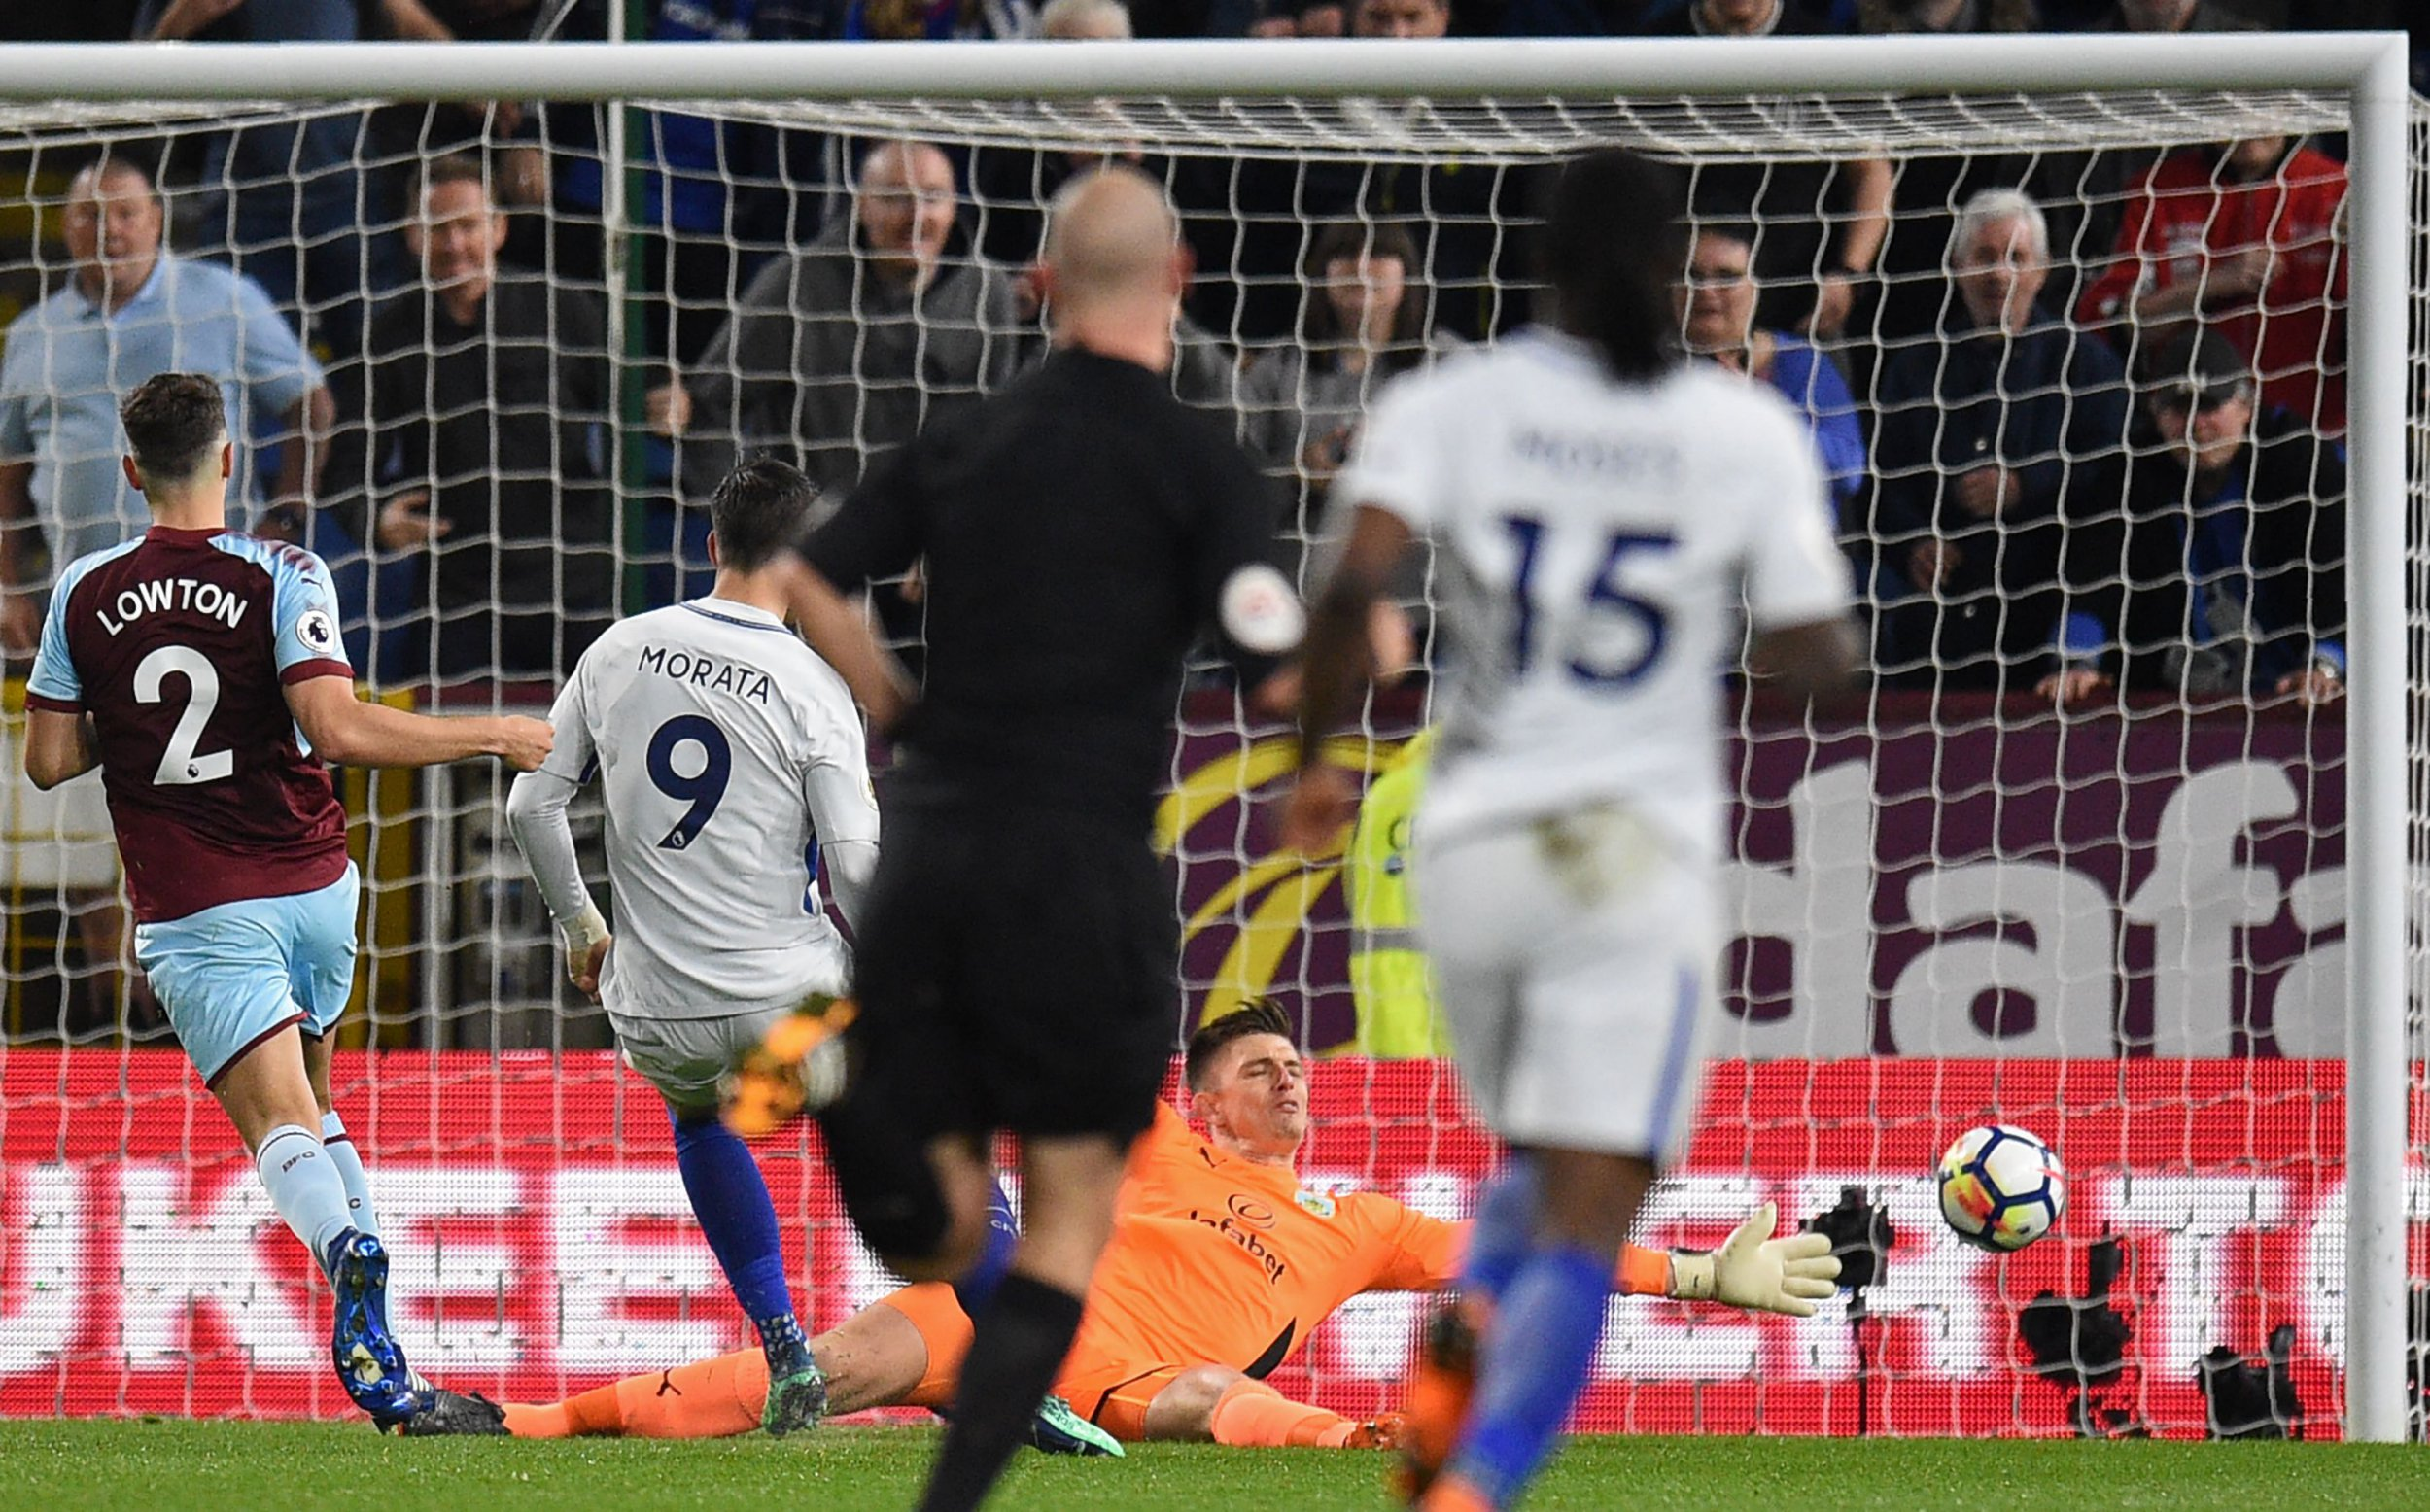 Chelsea's Spanish striker Alvaro Morata (2nd L) shoots wide during the English Premier League football match between Burnley and Chelsea at Turf Moor in Burnley, north west England on April 19, 2018. / AFP PHOTO / Oli SCARFF / RESTRICTED TO EDITORIAL USE. No use with unauthorized audio, video, data, fixture lists, club/league logos or 'live' services. Online in-match use limited to 75 images, no video emulation. No use in betting, games or single club/league/player publications. / OLI SCARFF/AFP/Getty Images